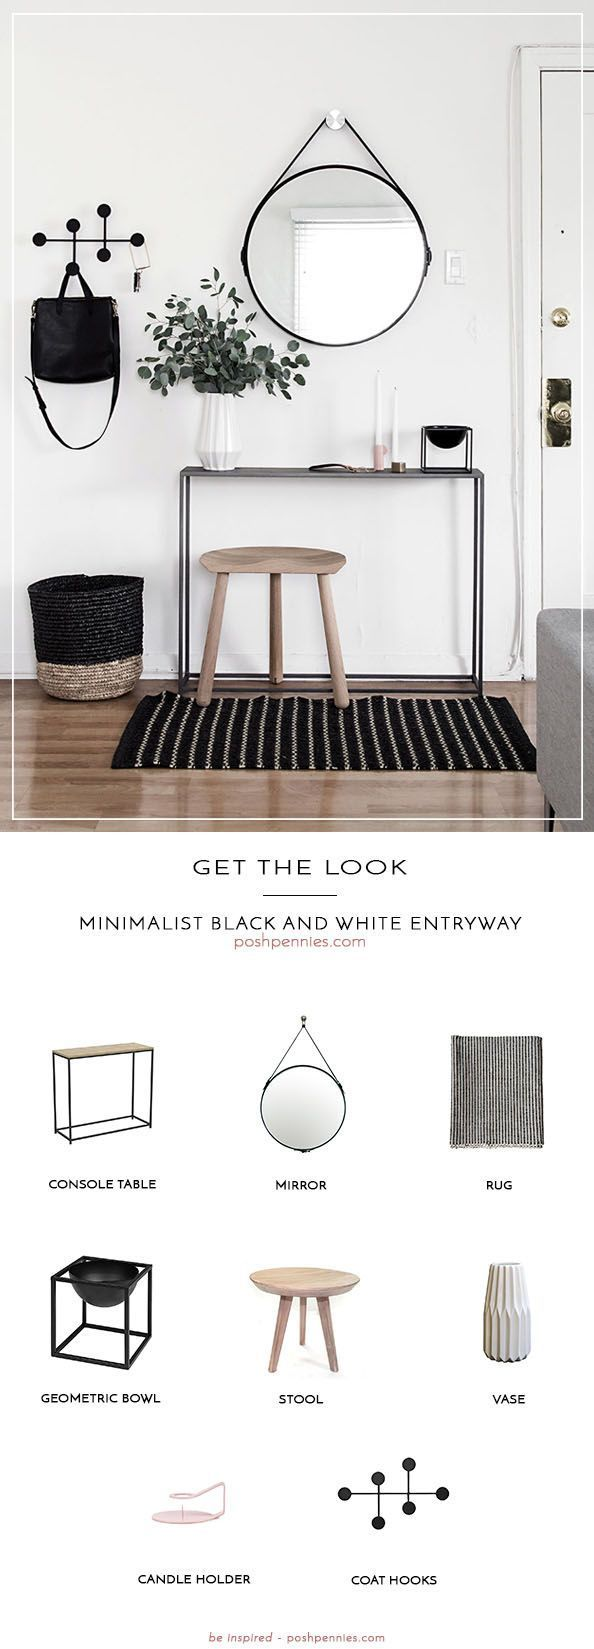 Get The Look: Minimalist Black And White Entry images